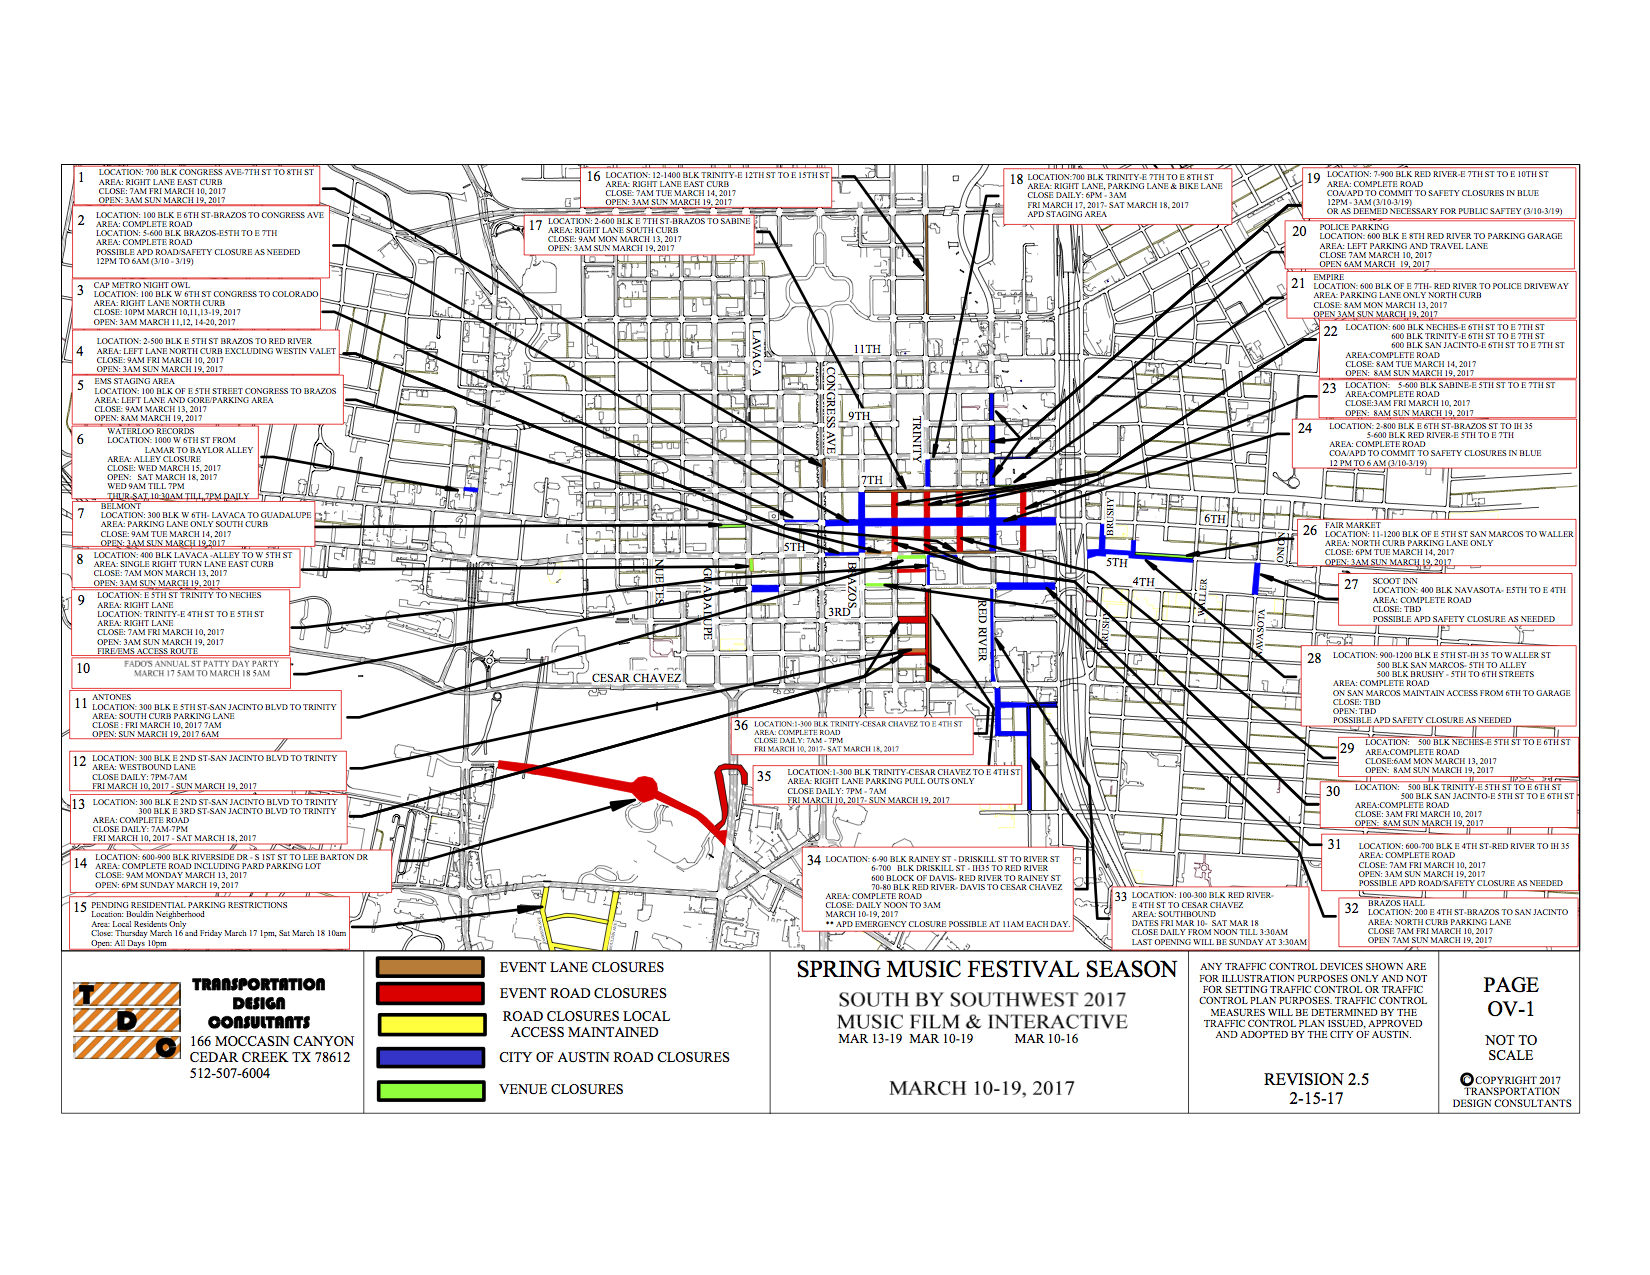 SXSW - Curbed Austin Sxsw Map on live map, linkedin map, business map, culture map, marketing map, communication map, research map, love map, fashion map, networking map, food map, inspiration map, maker faire map, london map, fun map, tv map, coachella map, itunes map, sasquatch map, interactive map,